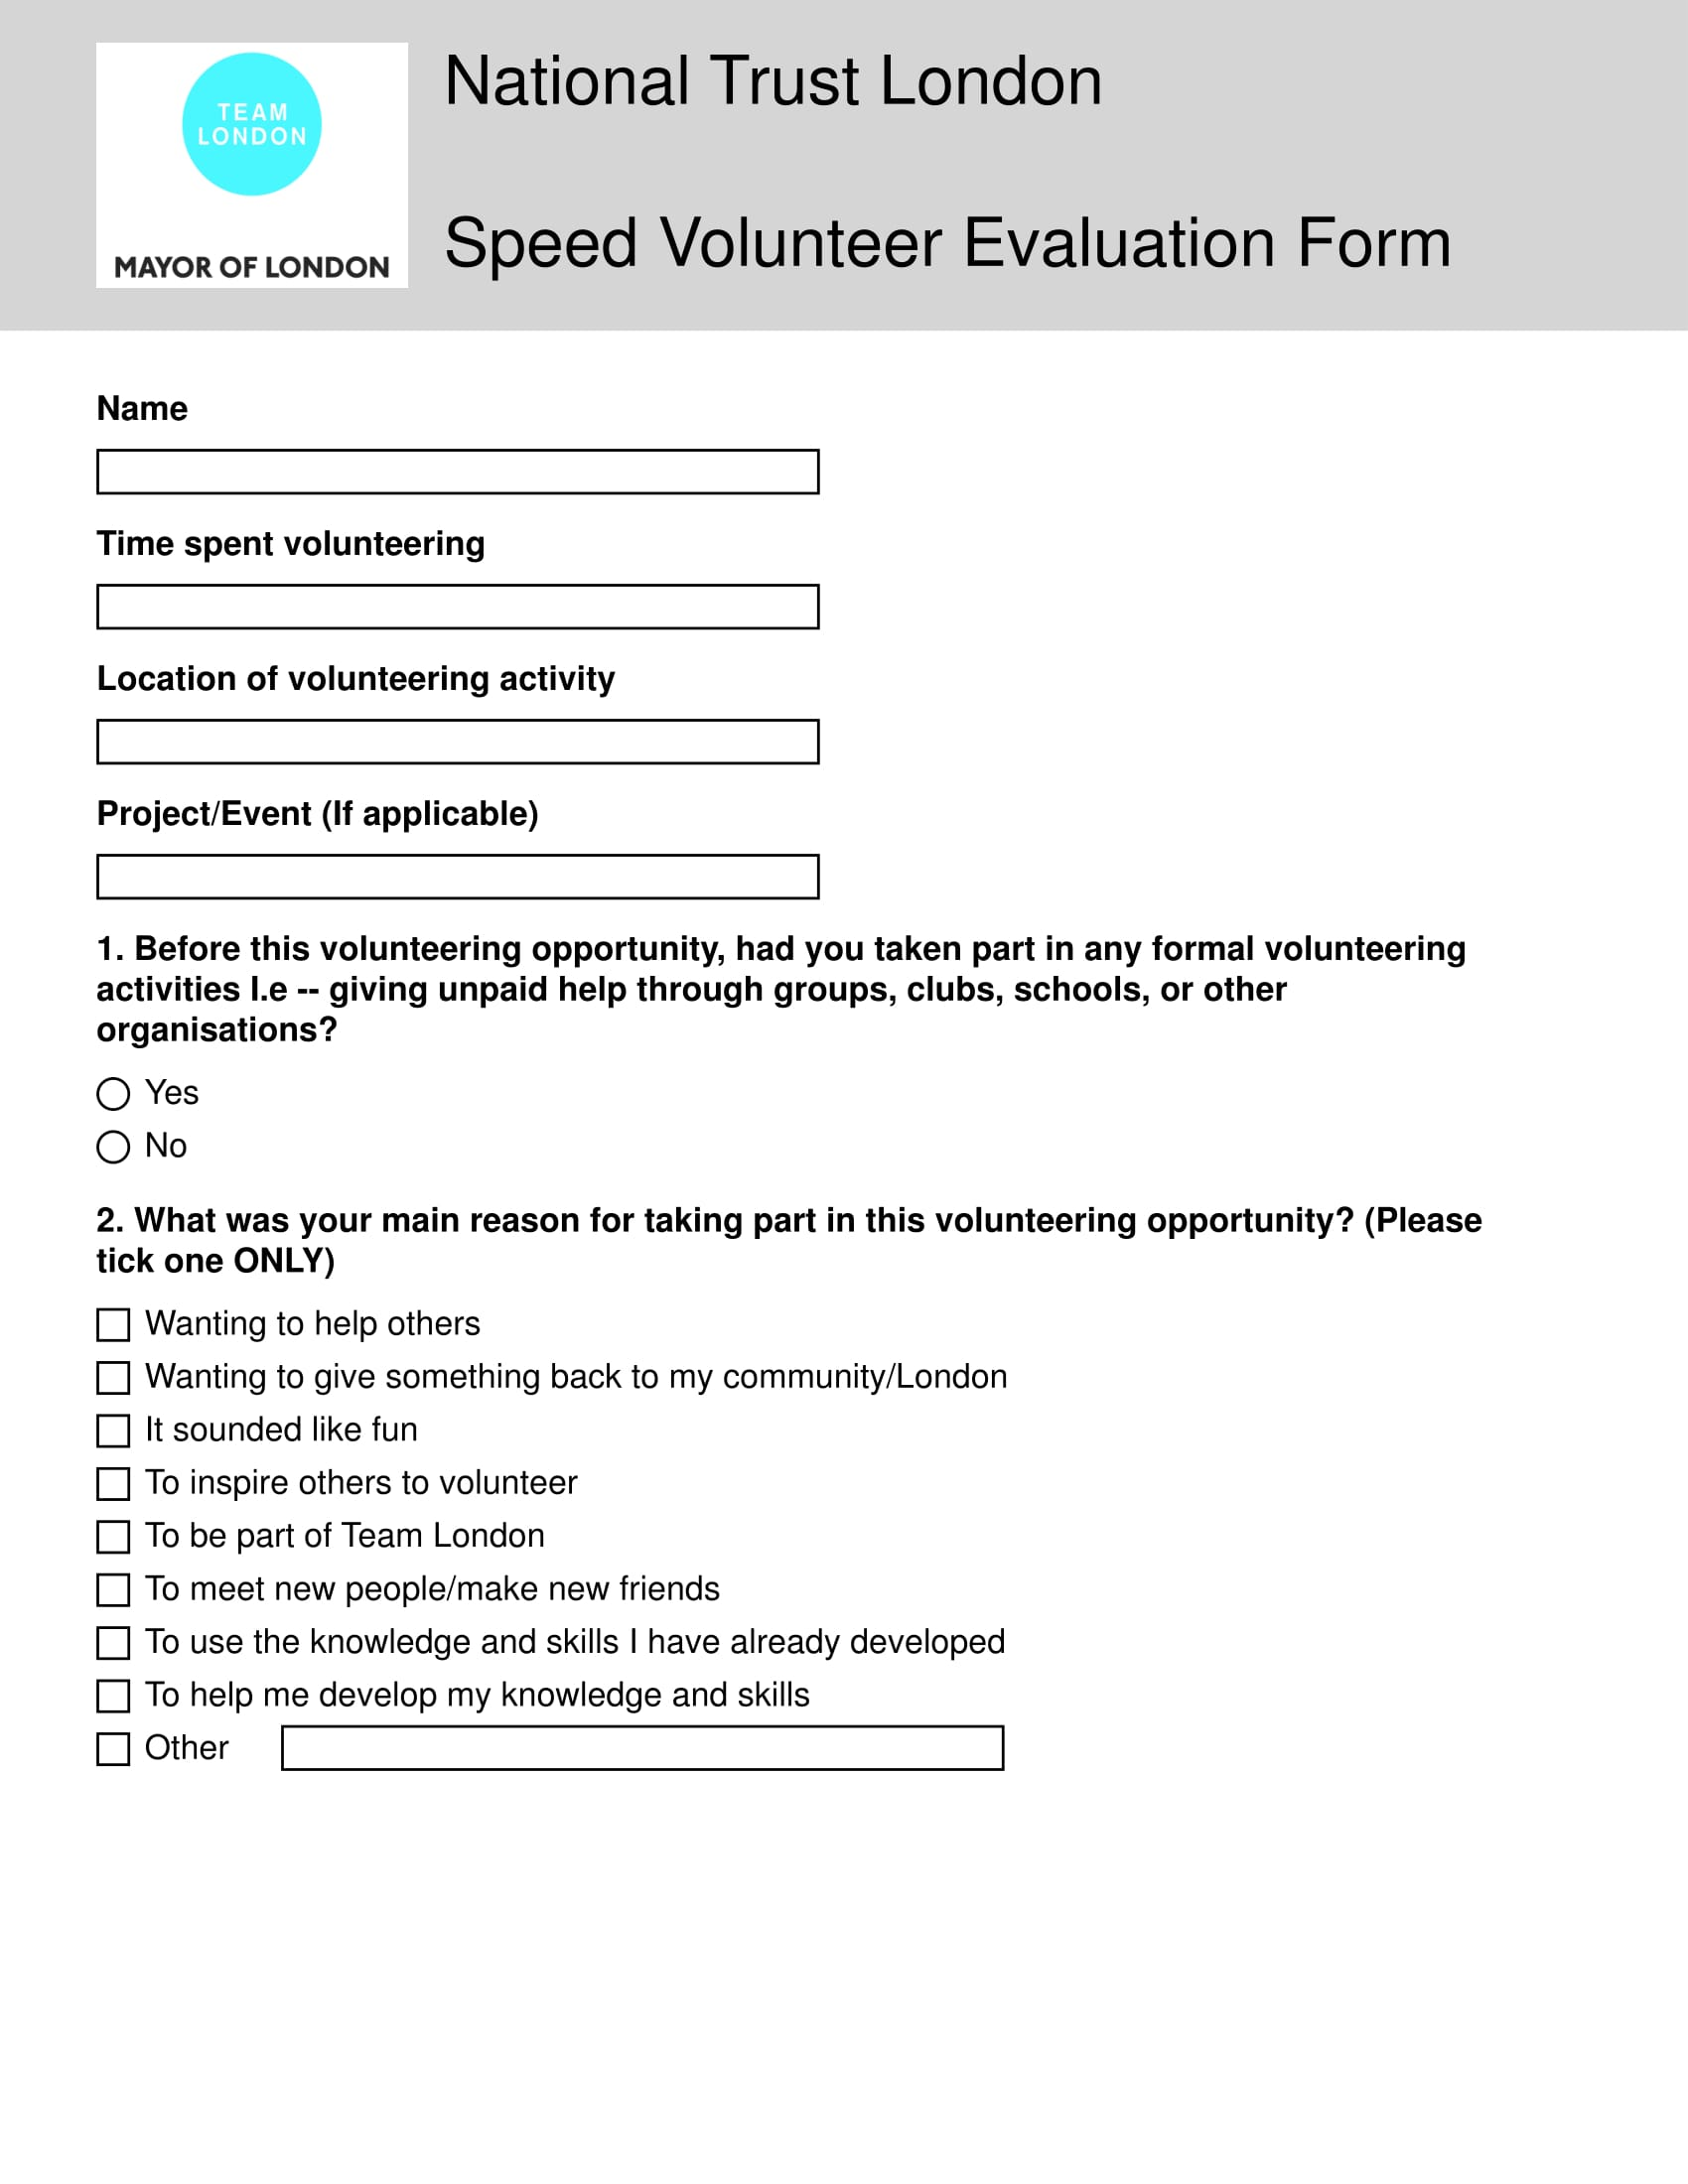 awesome resume evaluation form images simple resume office speed volunteer evaluation form 1 resume evaluation formhtml